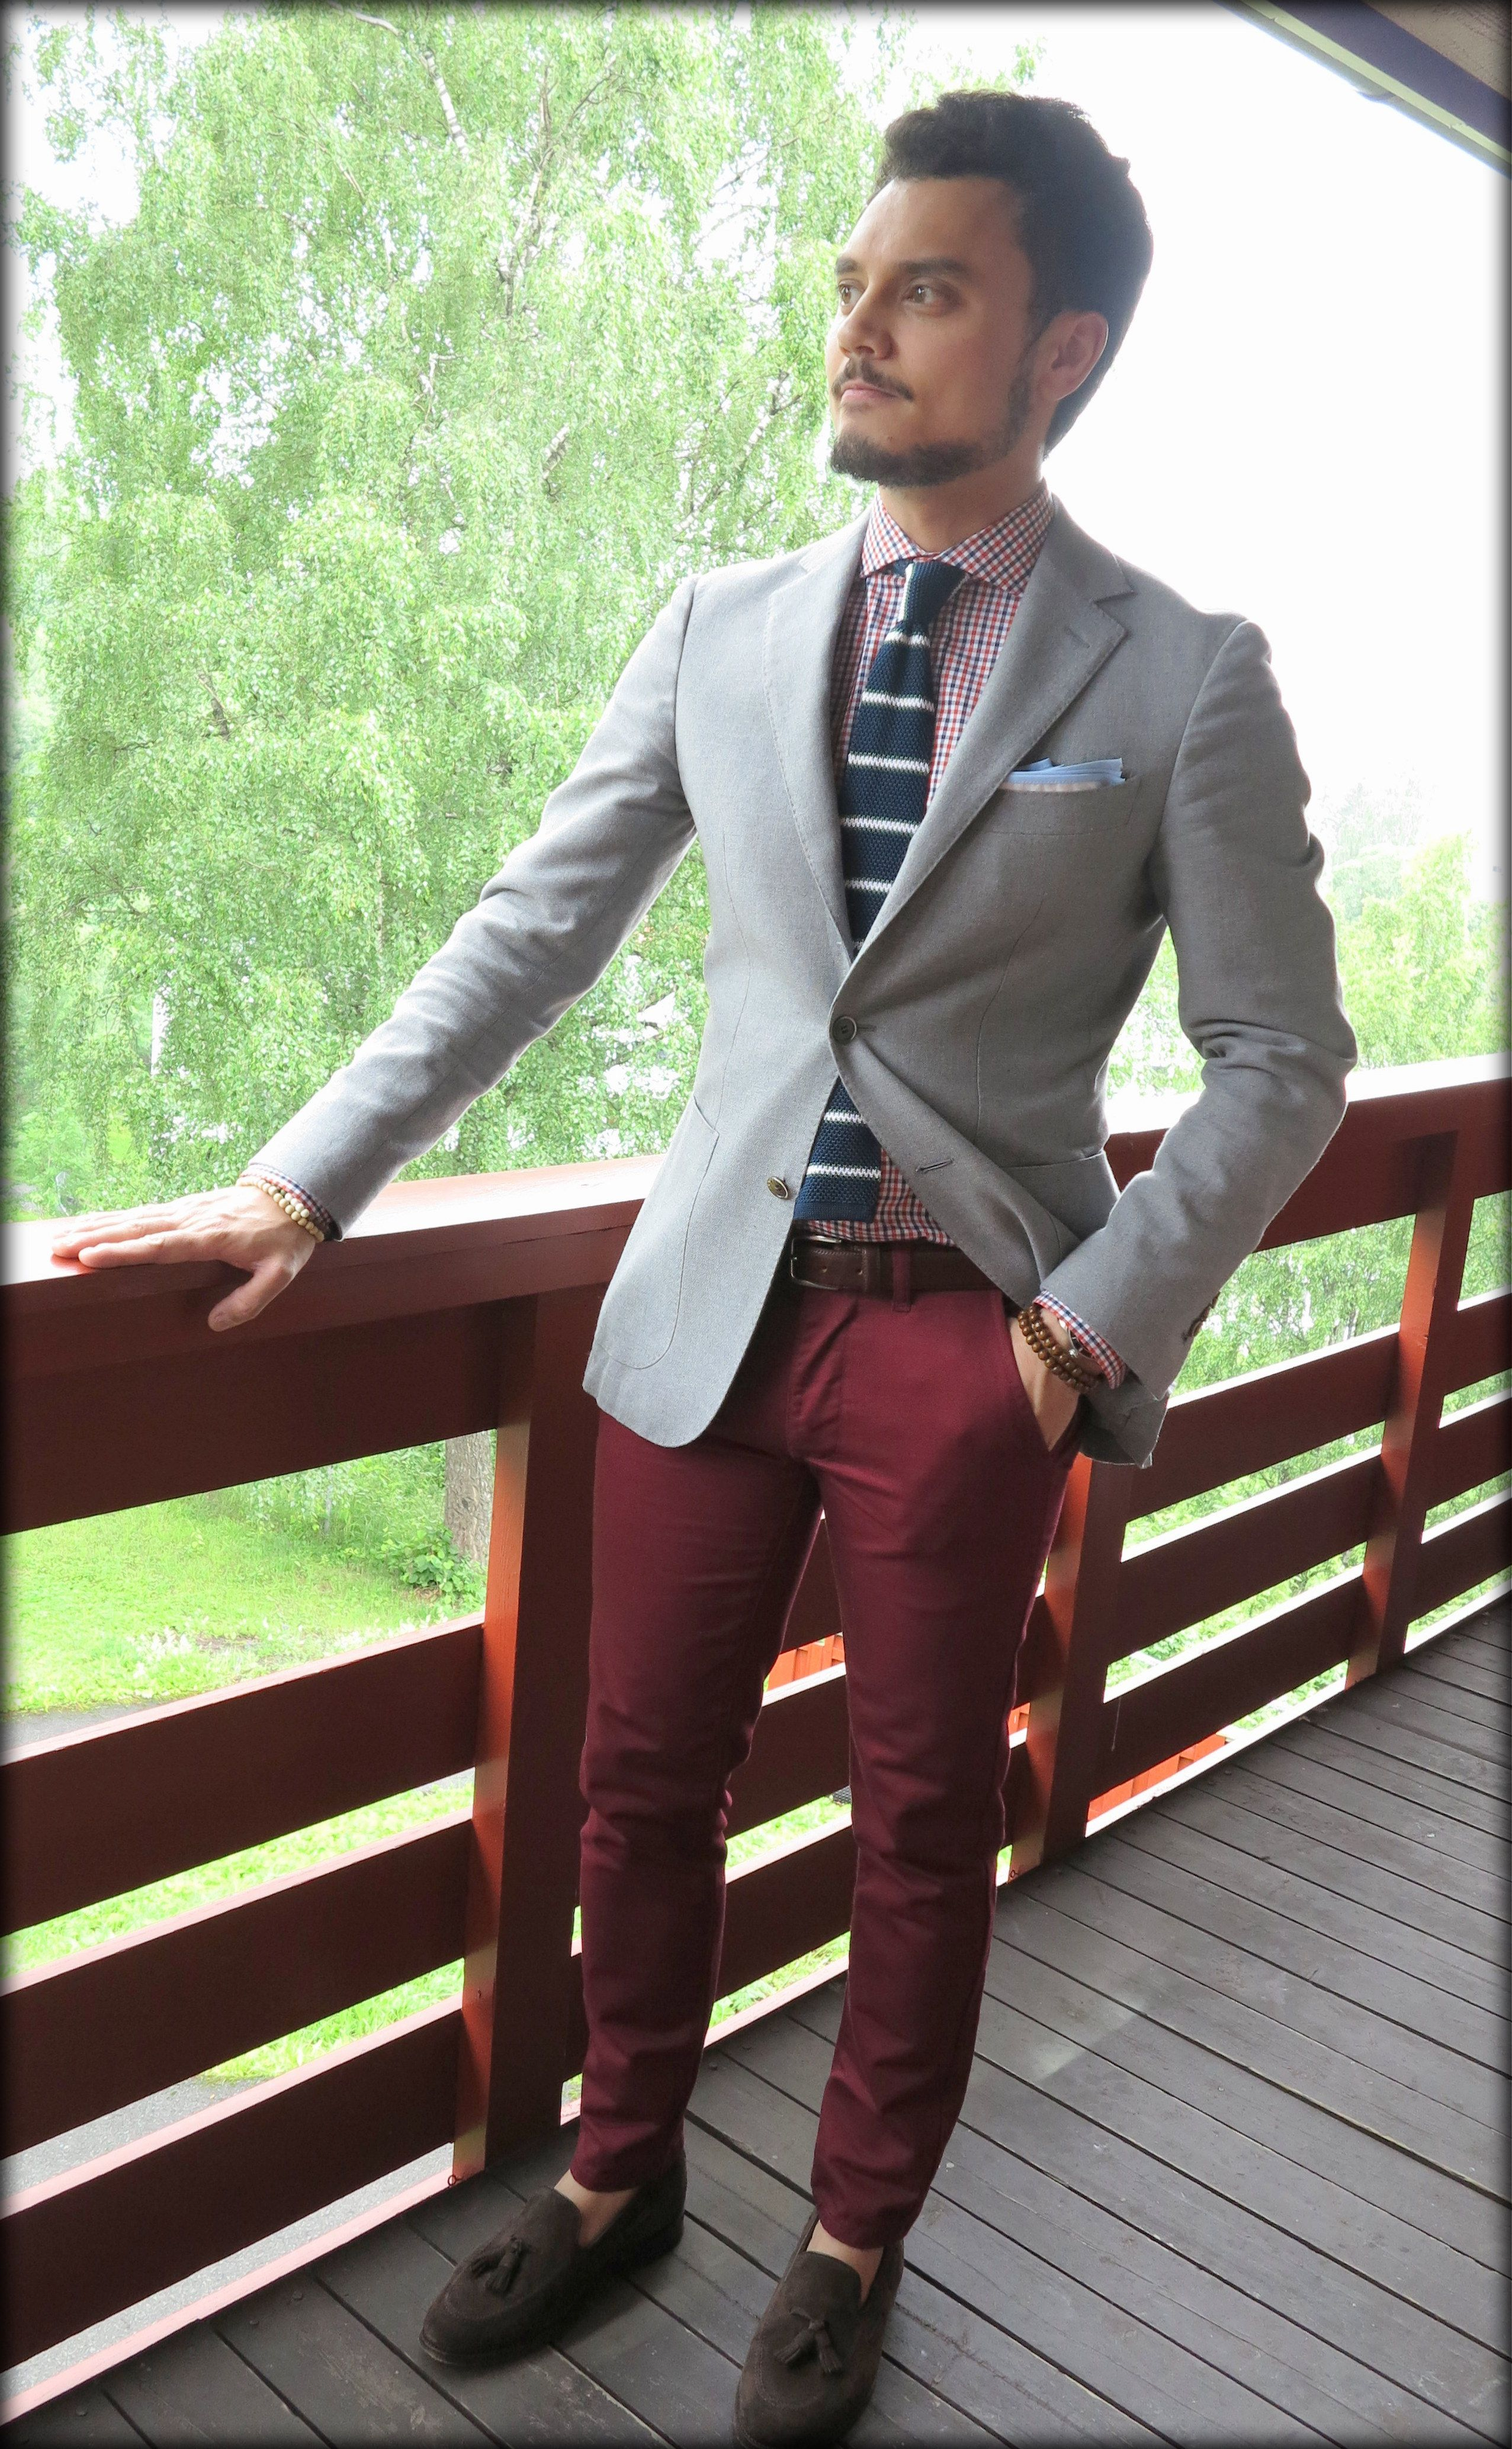 Burgundy Pants And Blue Shirt - Google Search | Men Suits | Pinterest | Burgundy Pants Burgundy ...